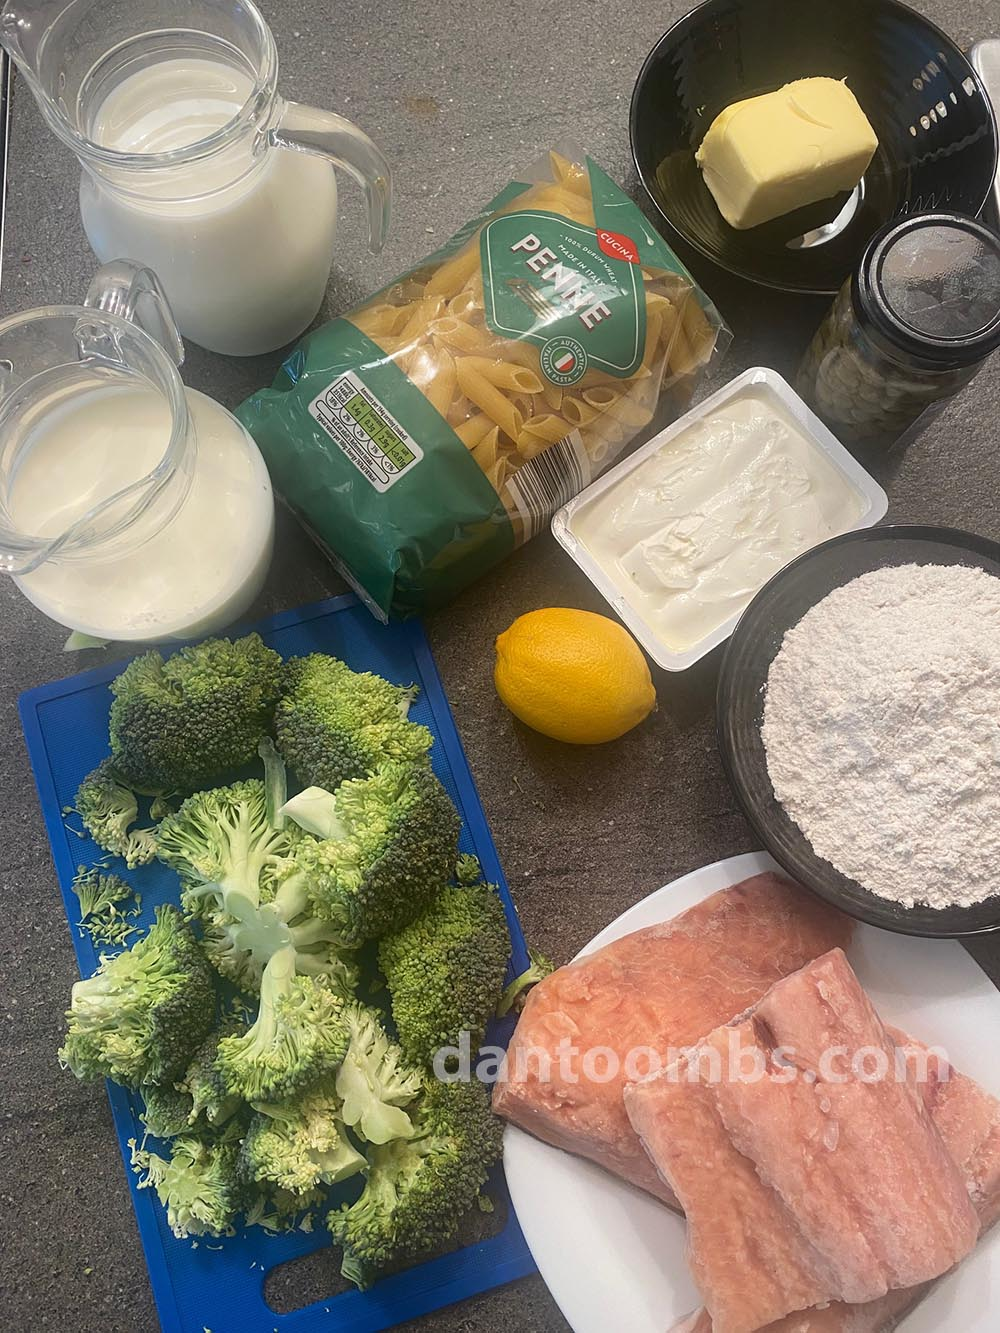 Ingredients for salmon and broccoli pasta bake